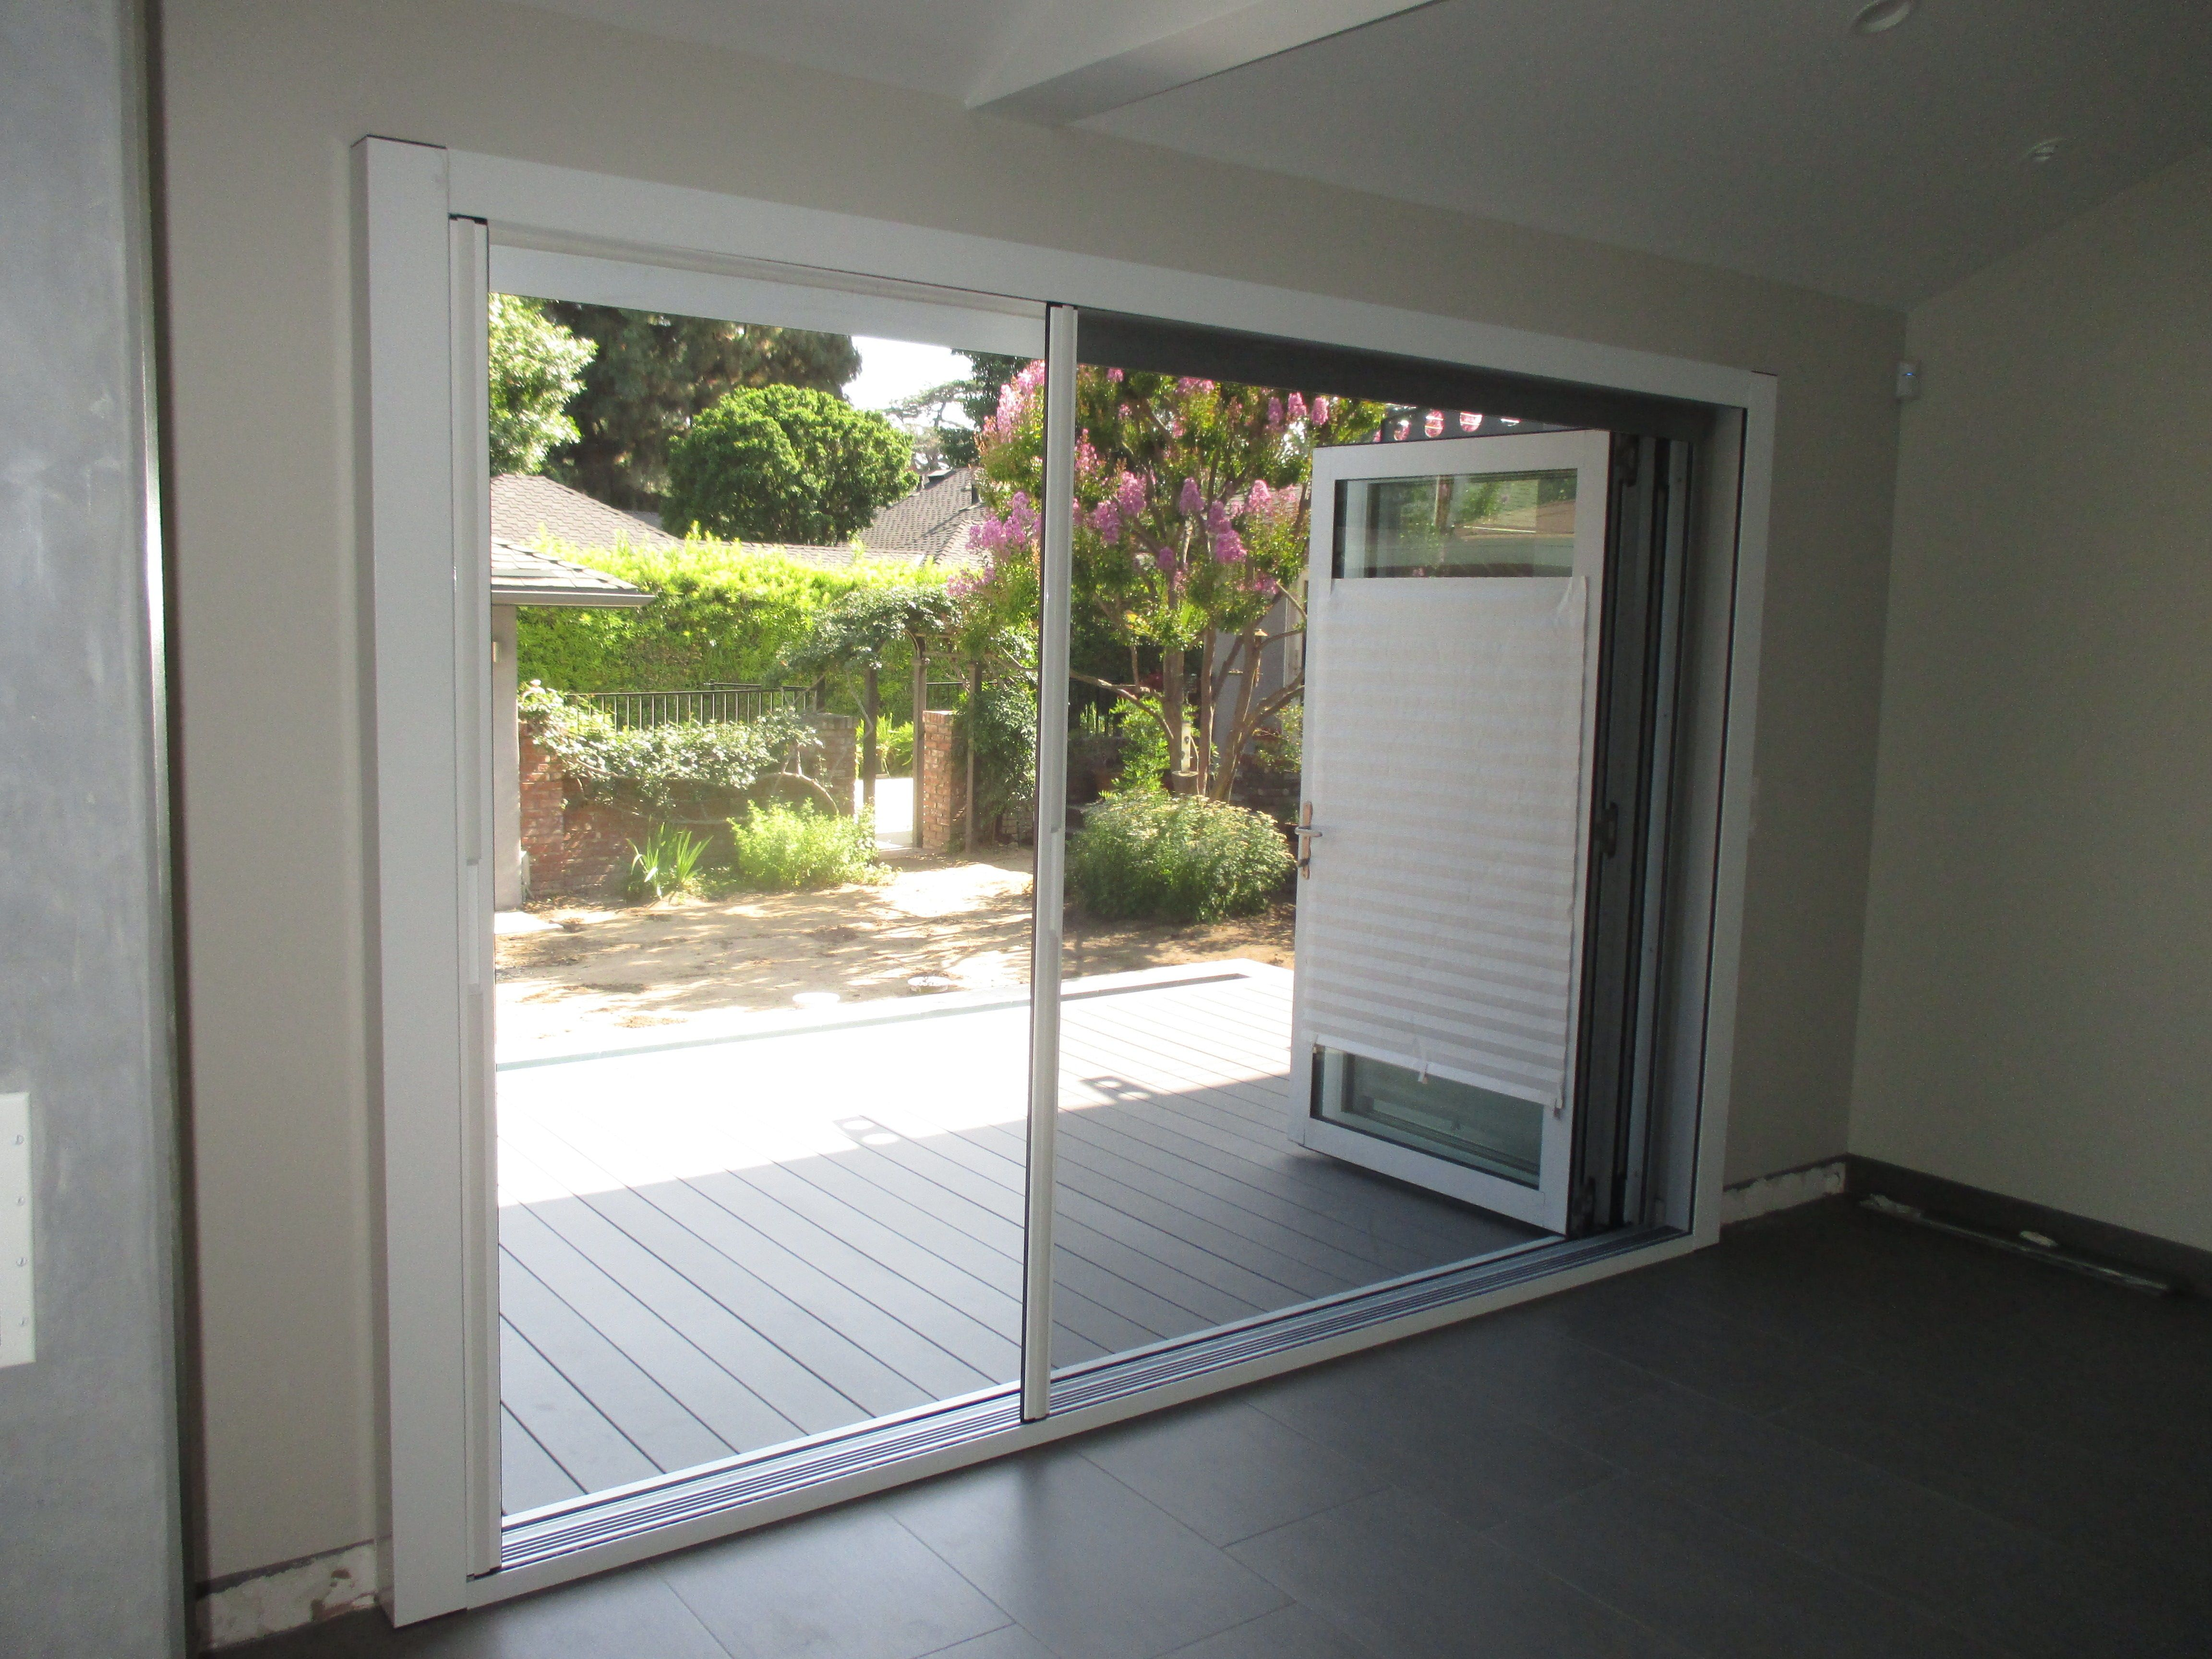 Our team did a unique installation of a double door Centor Screen with Black Super Screen on one side and White SheerWeave Blind for privacy on the other ... & Our team did a unique installation of a double door Centor Screen ...